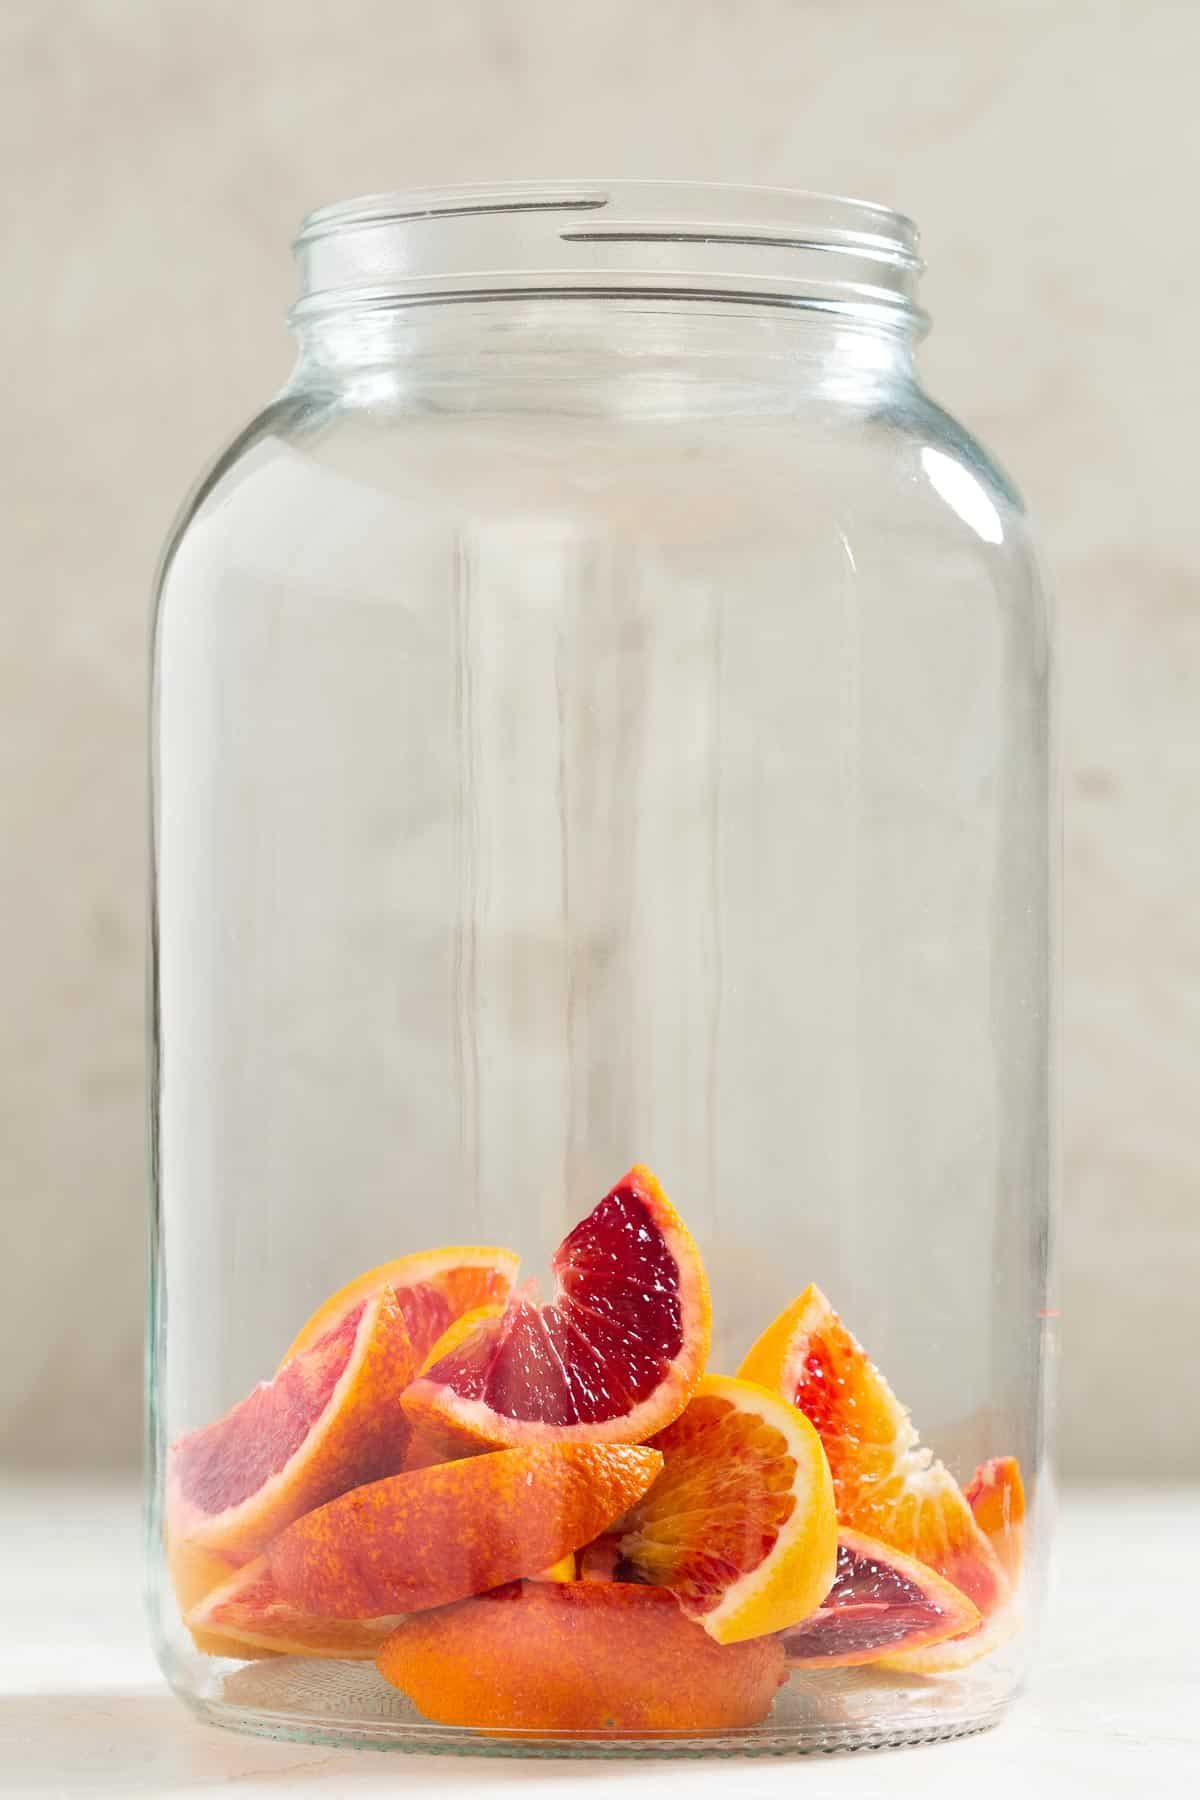 Large glass jug with slices of blood oranges on the bottom